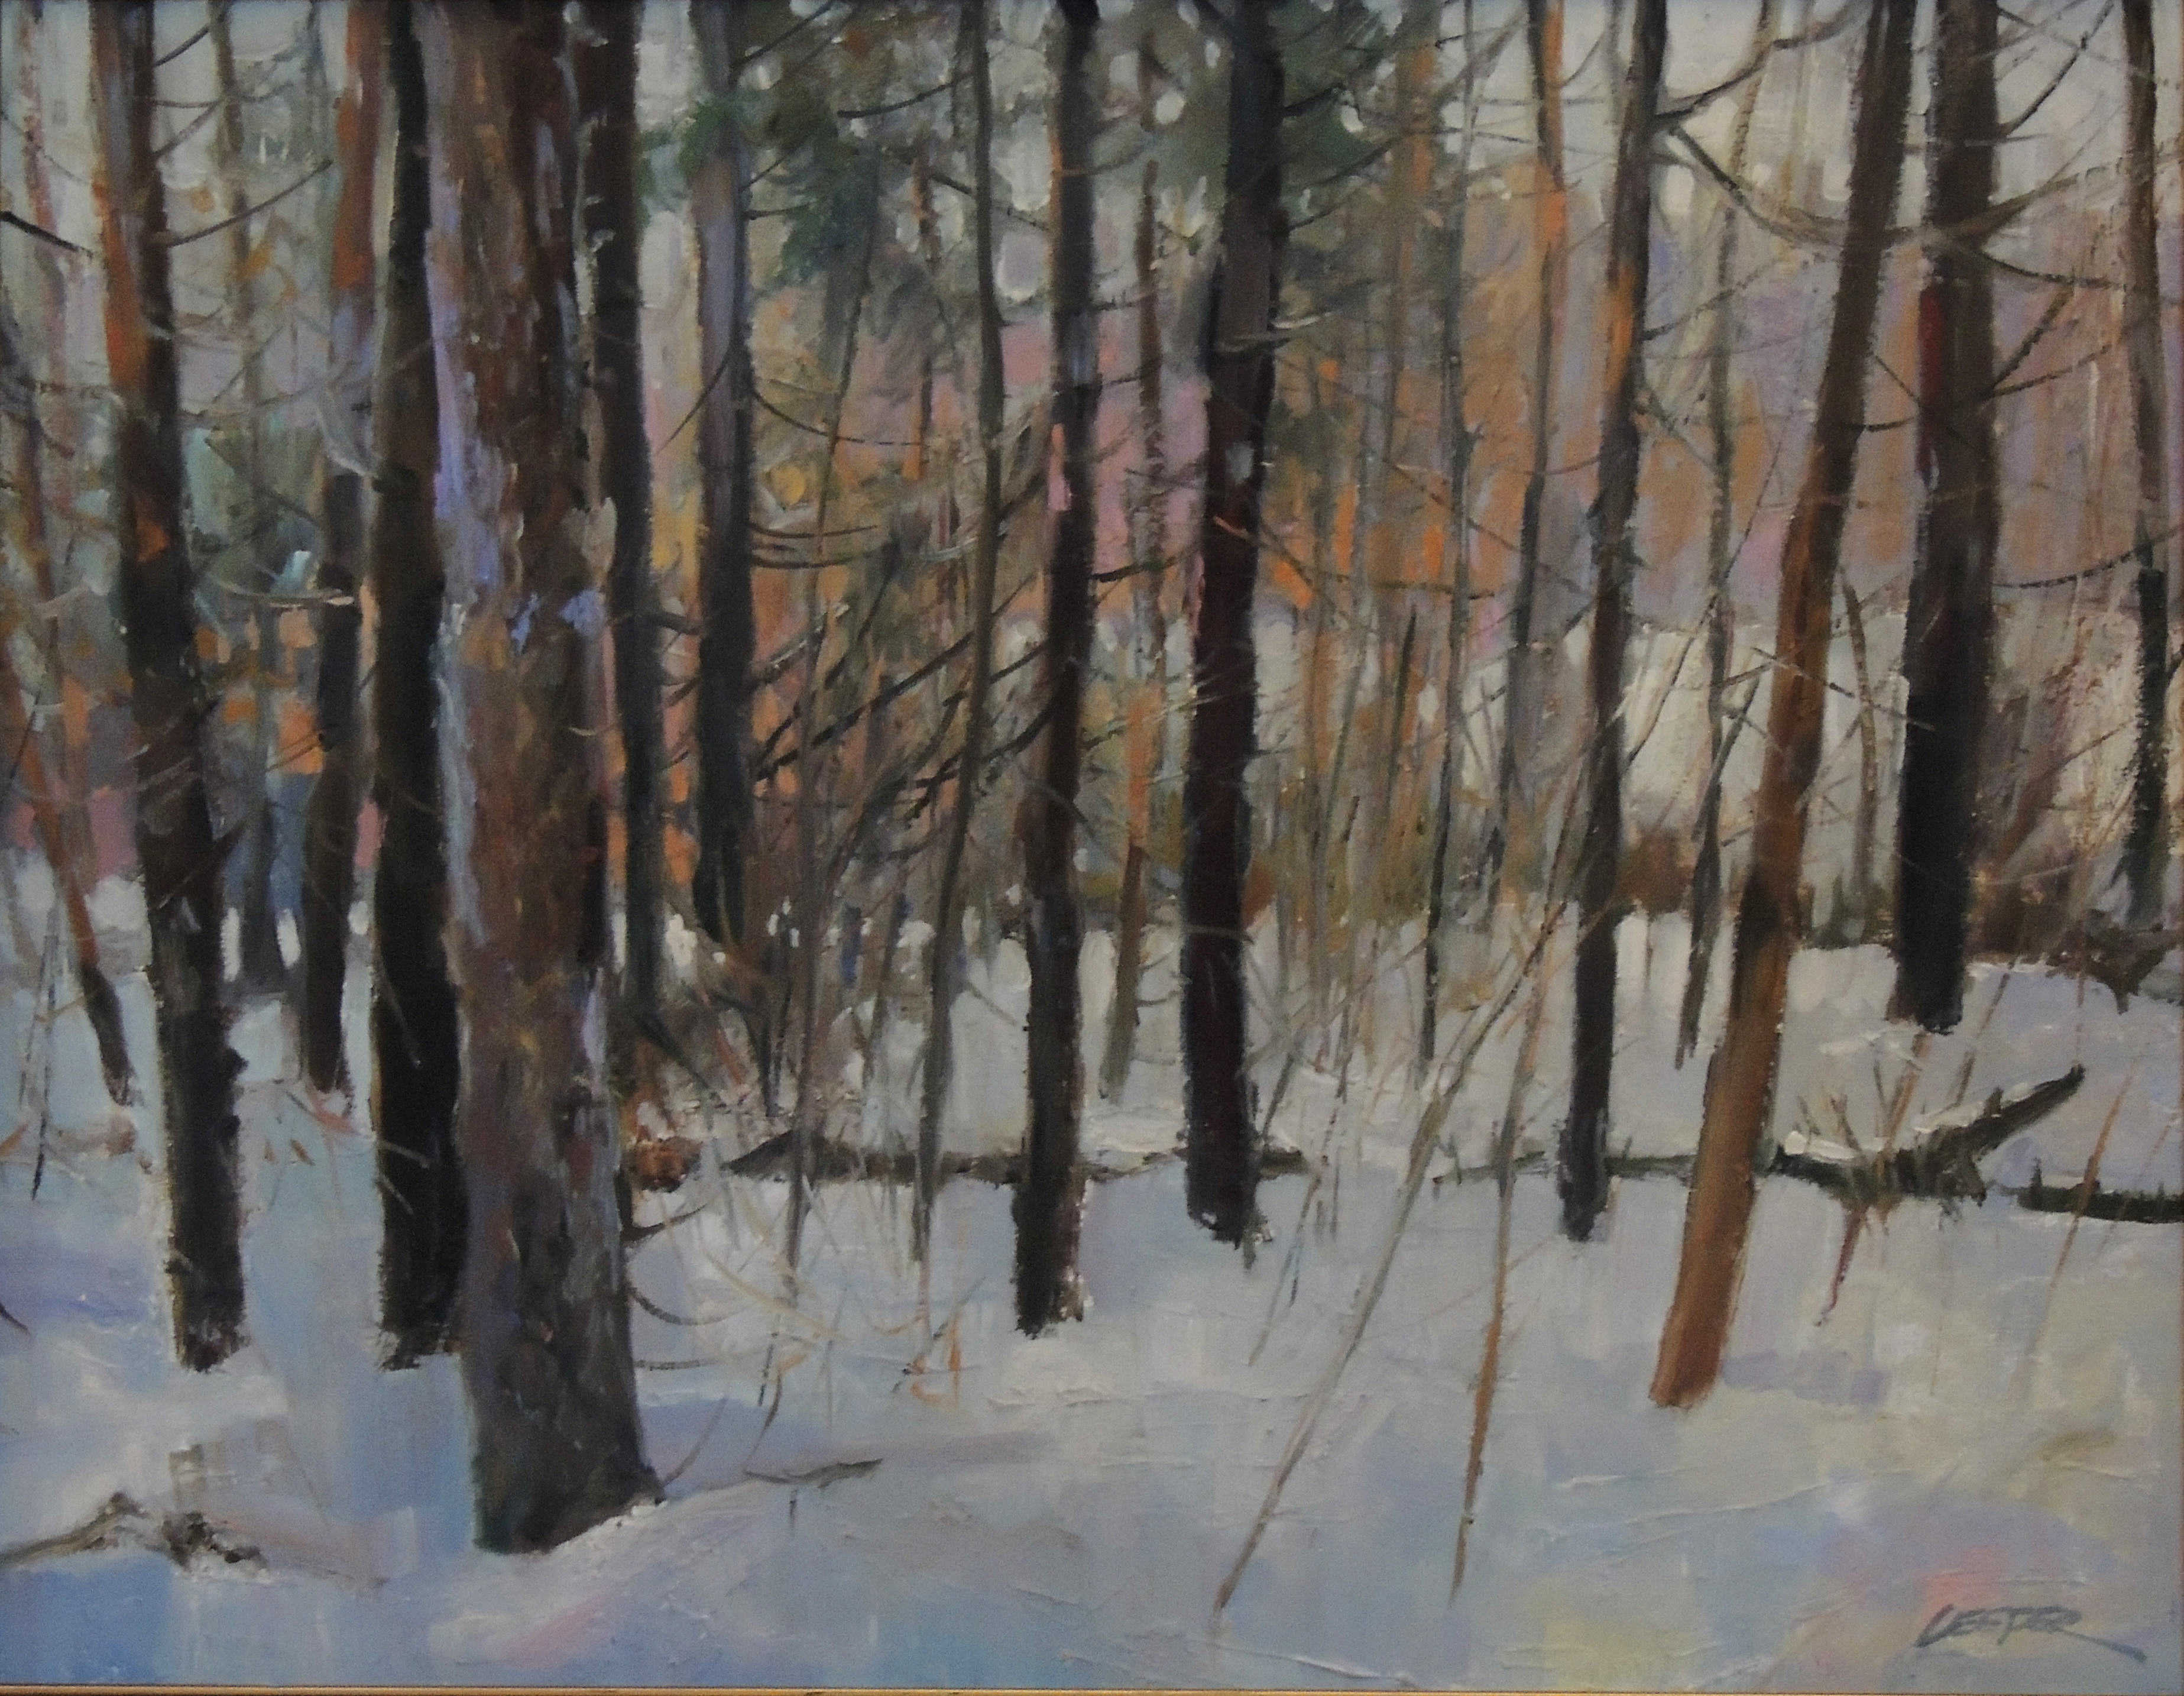 Christopher Leeper | SNOWY WOODS | oil | frame size 22x26